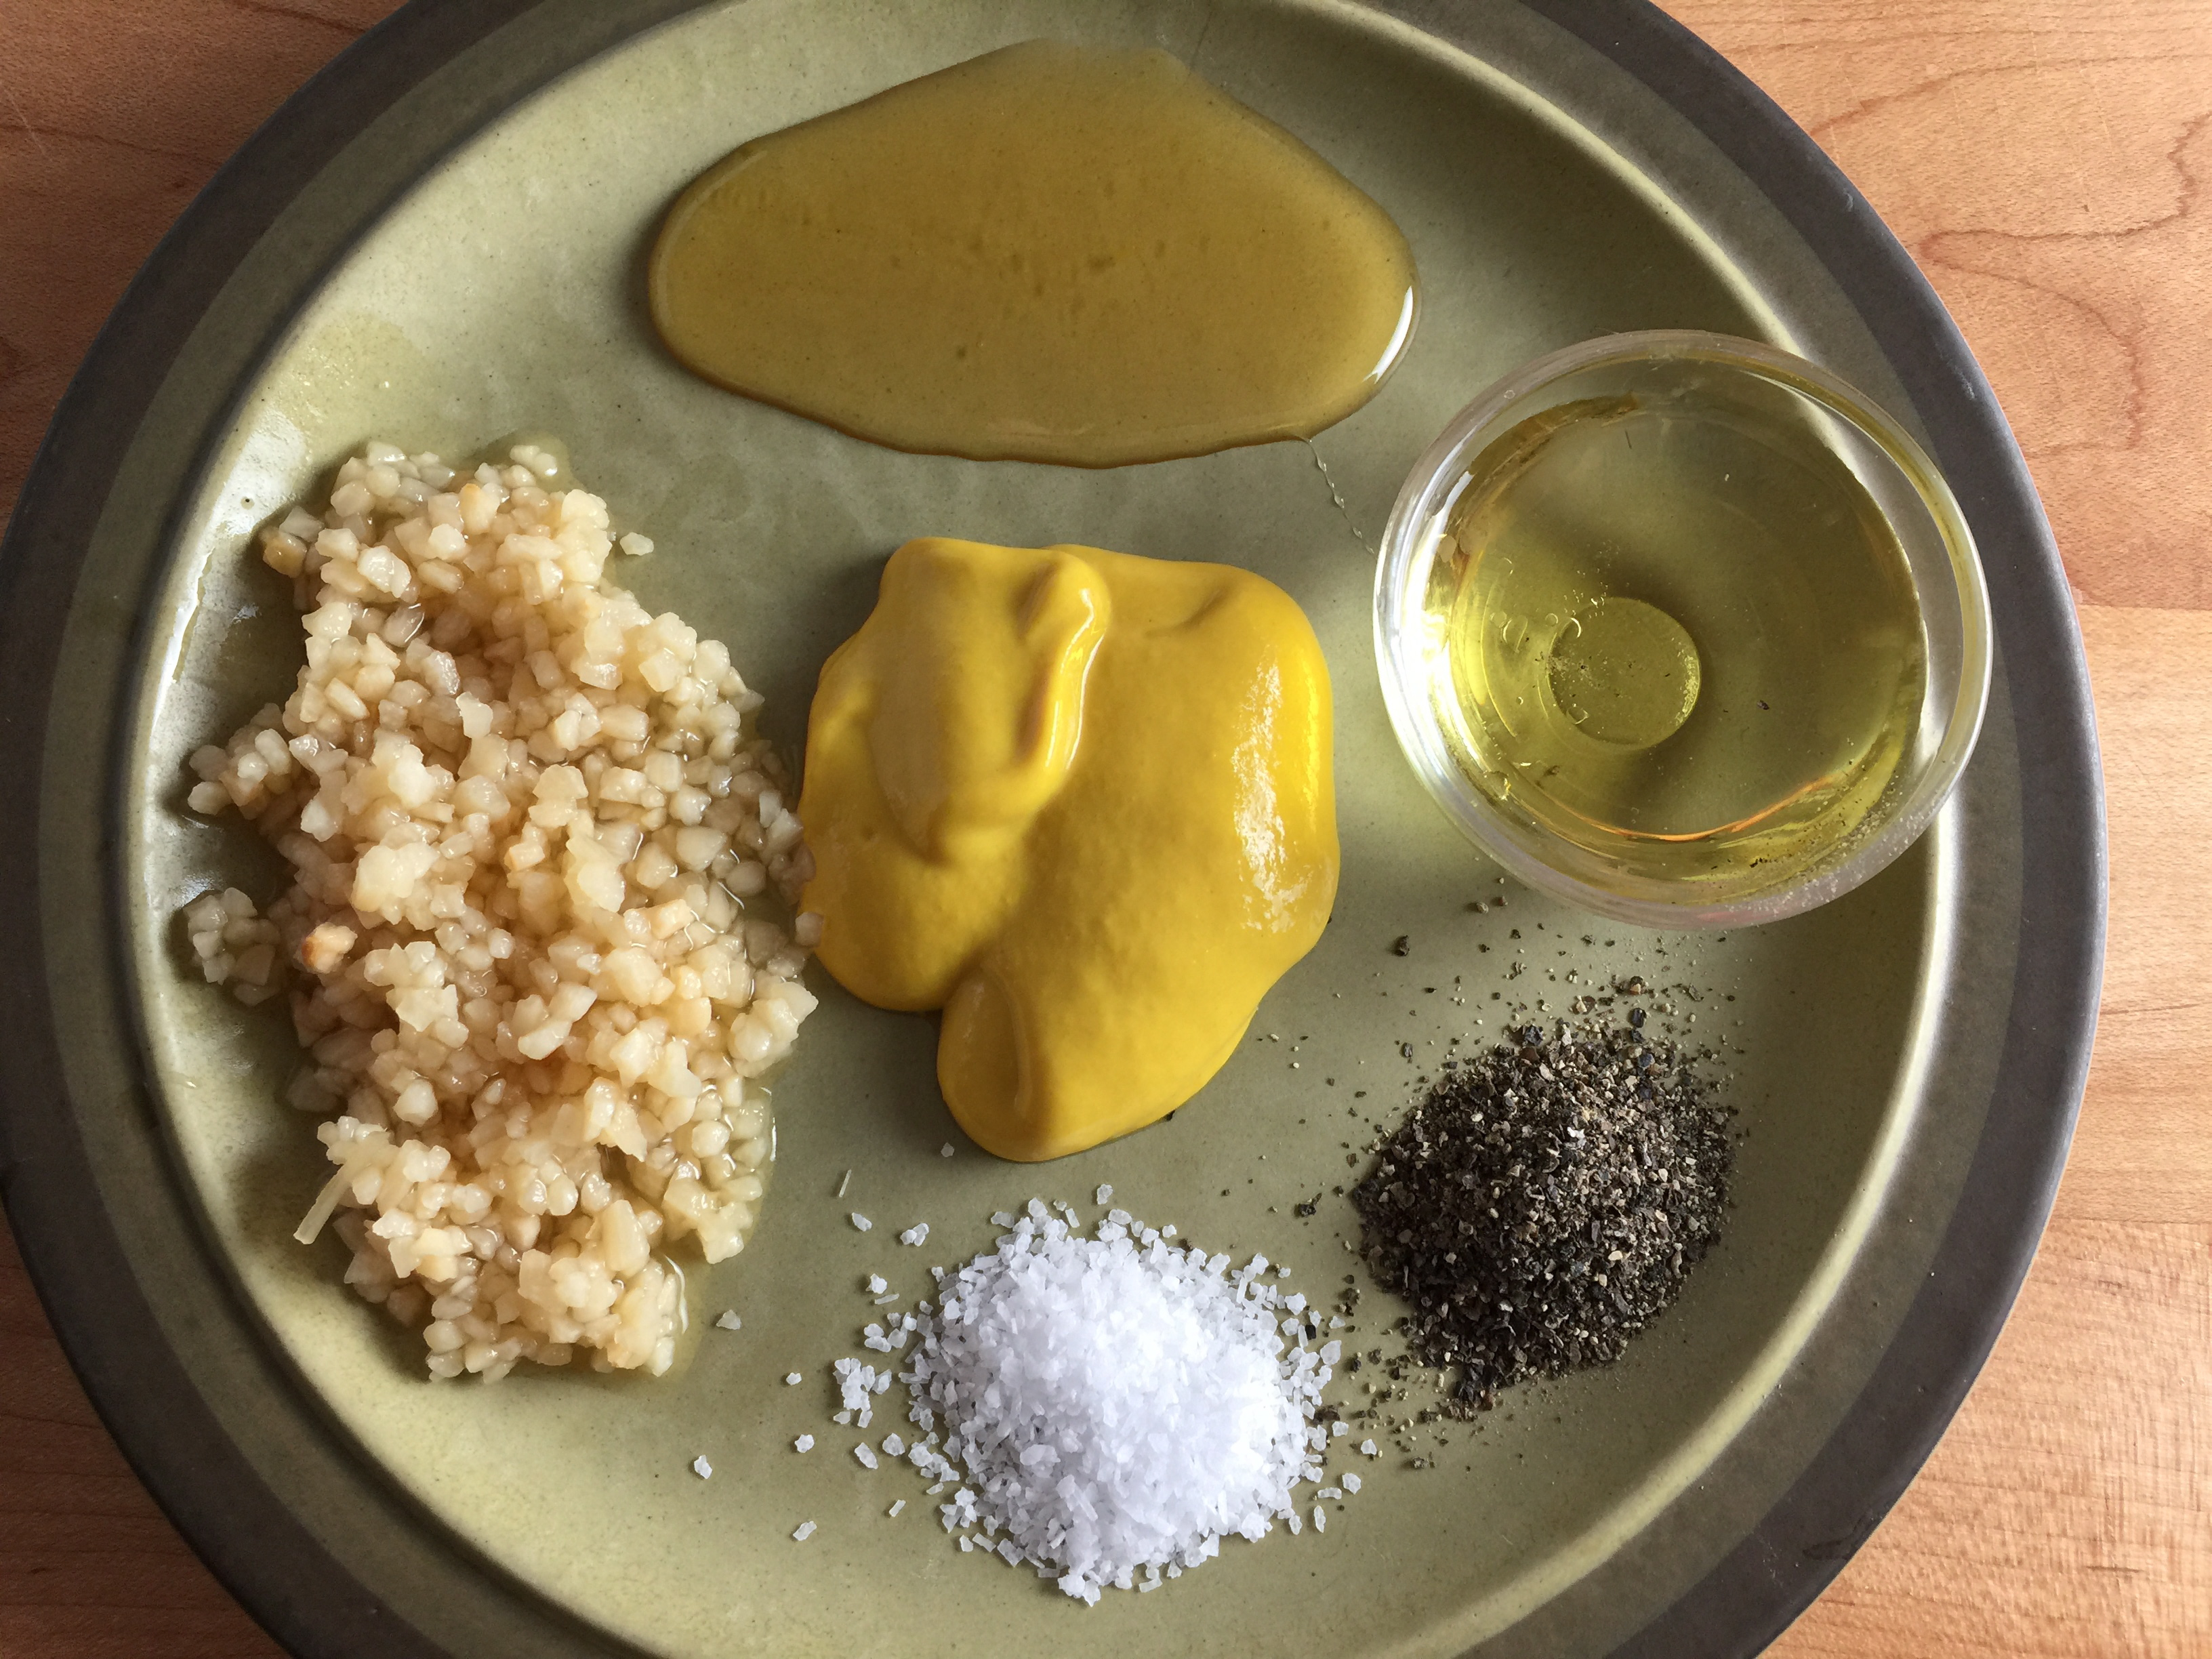 Honey Mustard Marinade